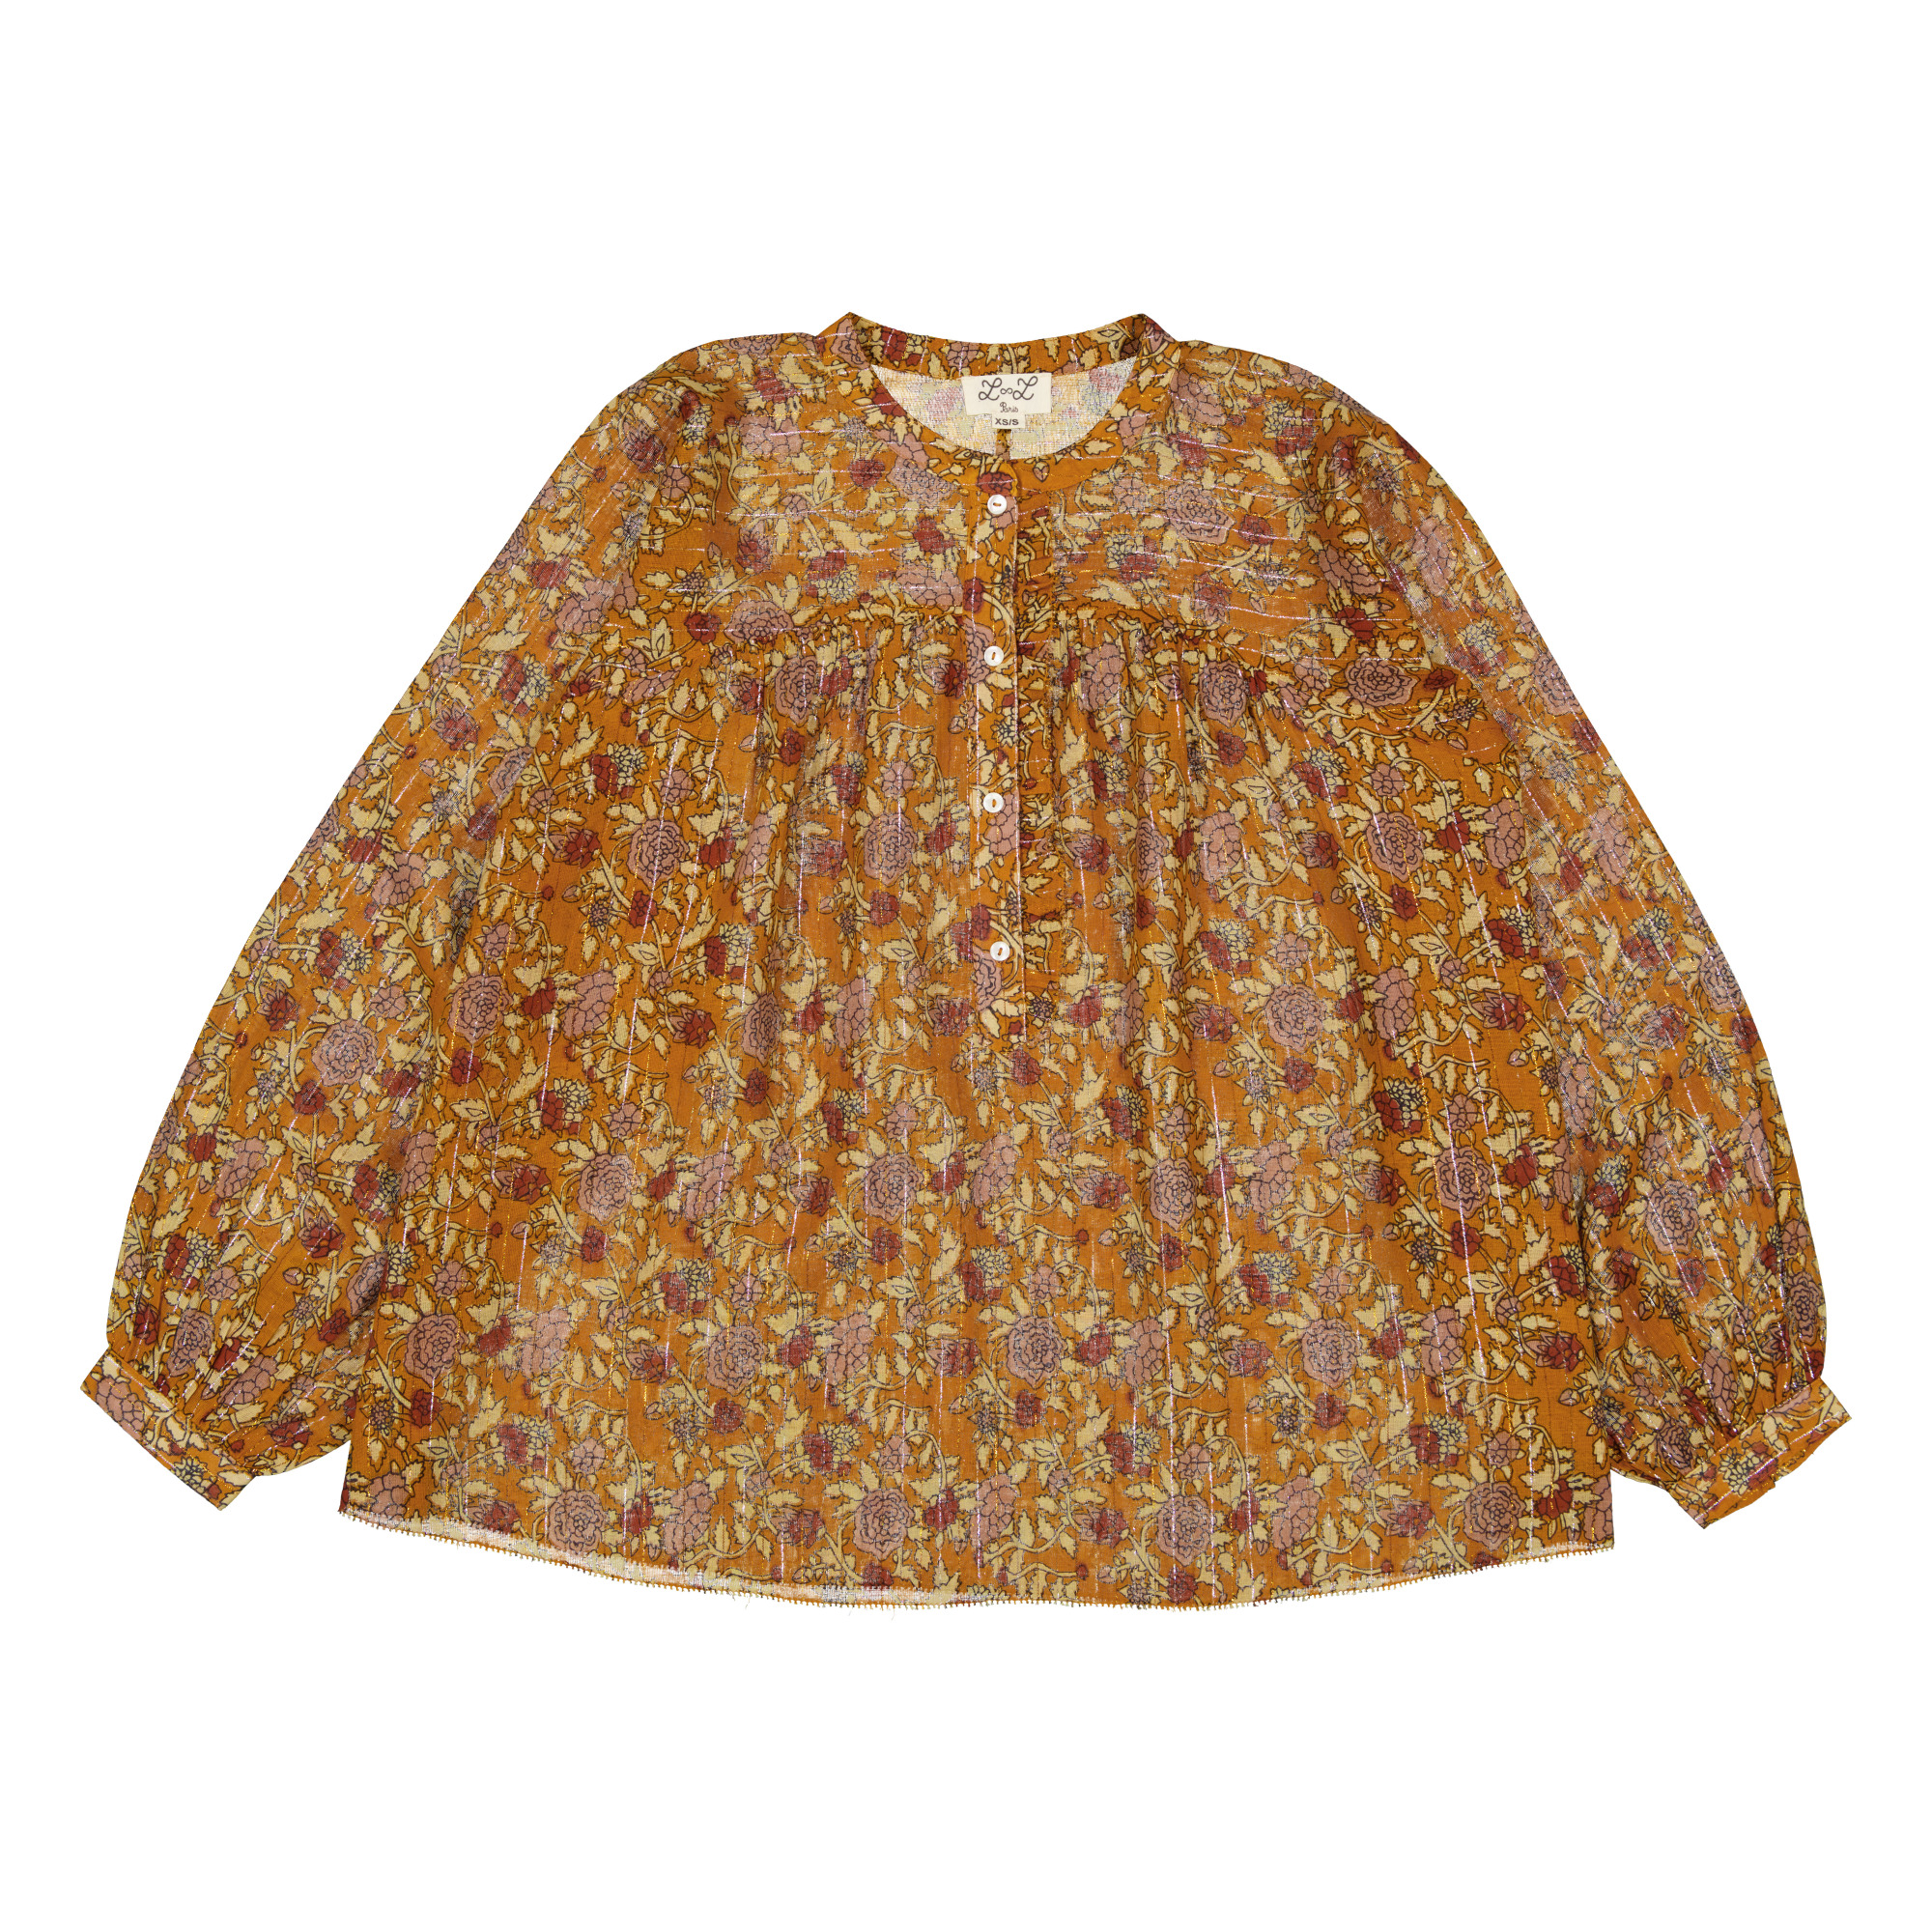 Blouse Manches Bouffantes - Collection Femme -